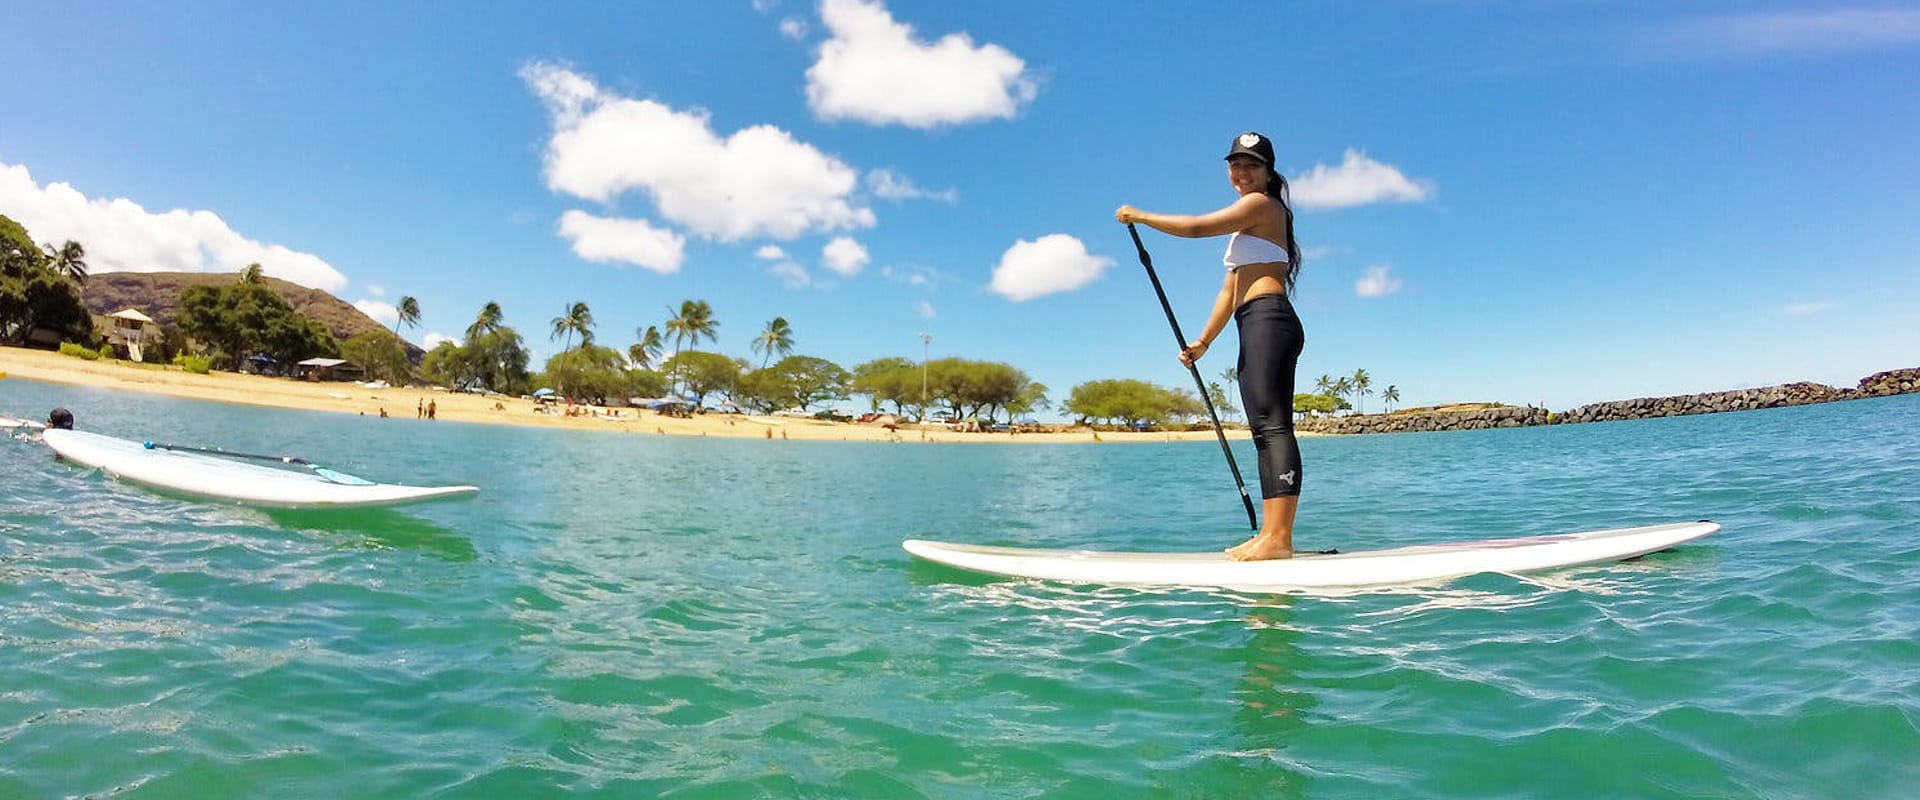 Learn the basics of stand up paddle boarding